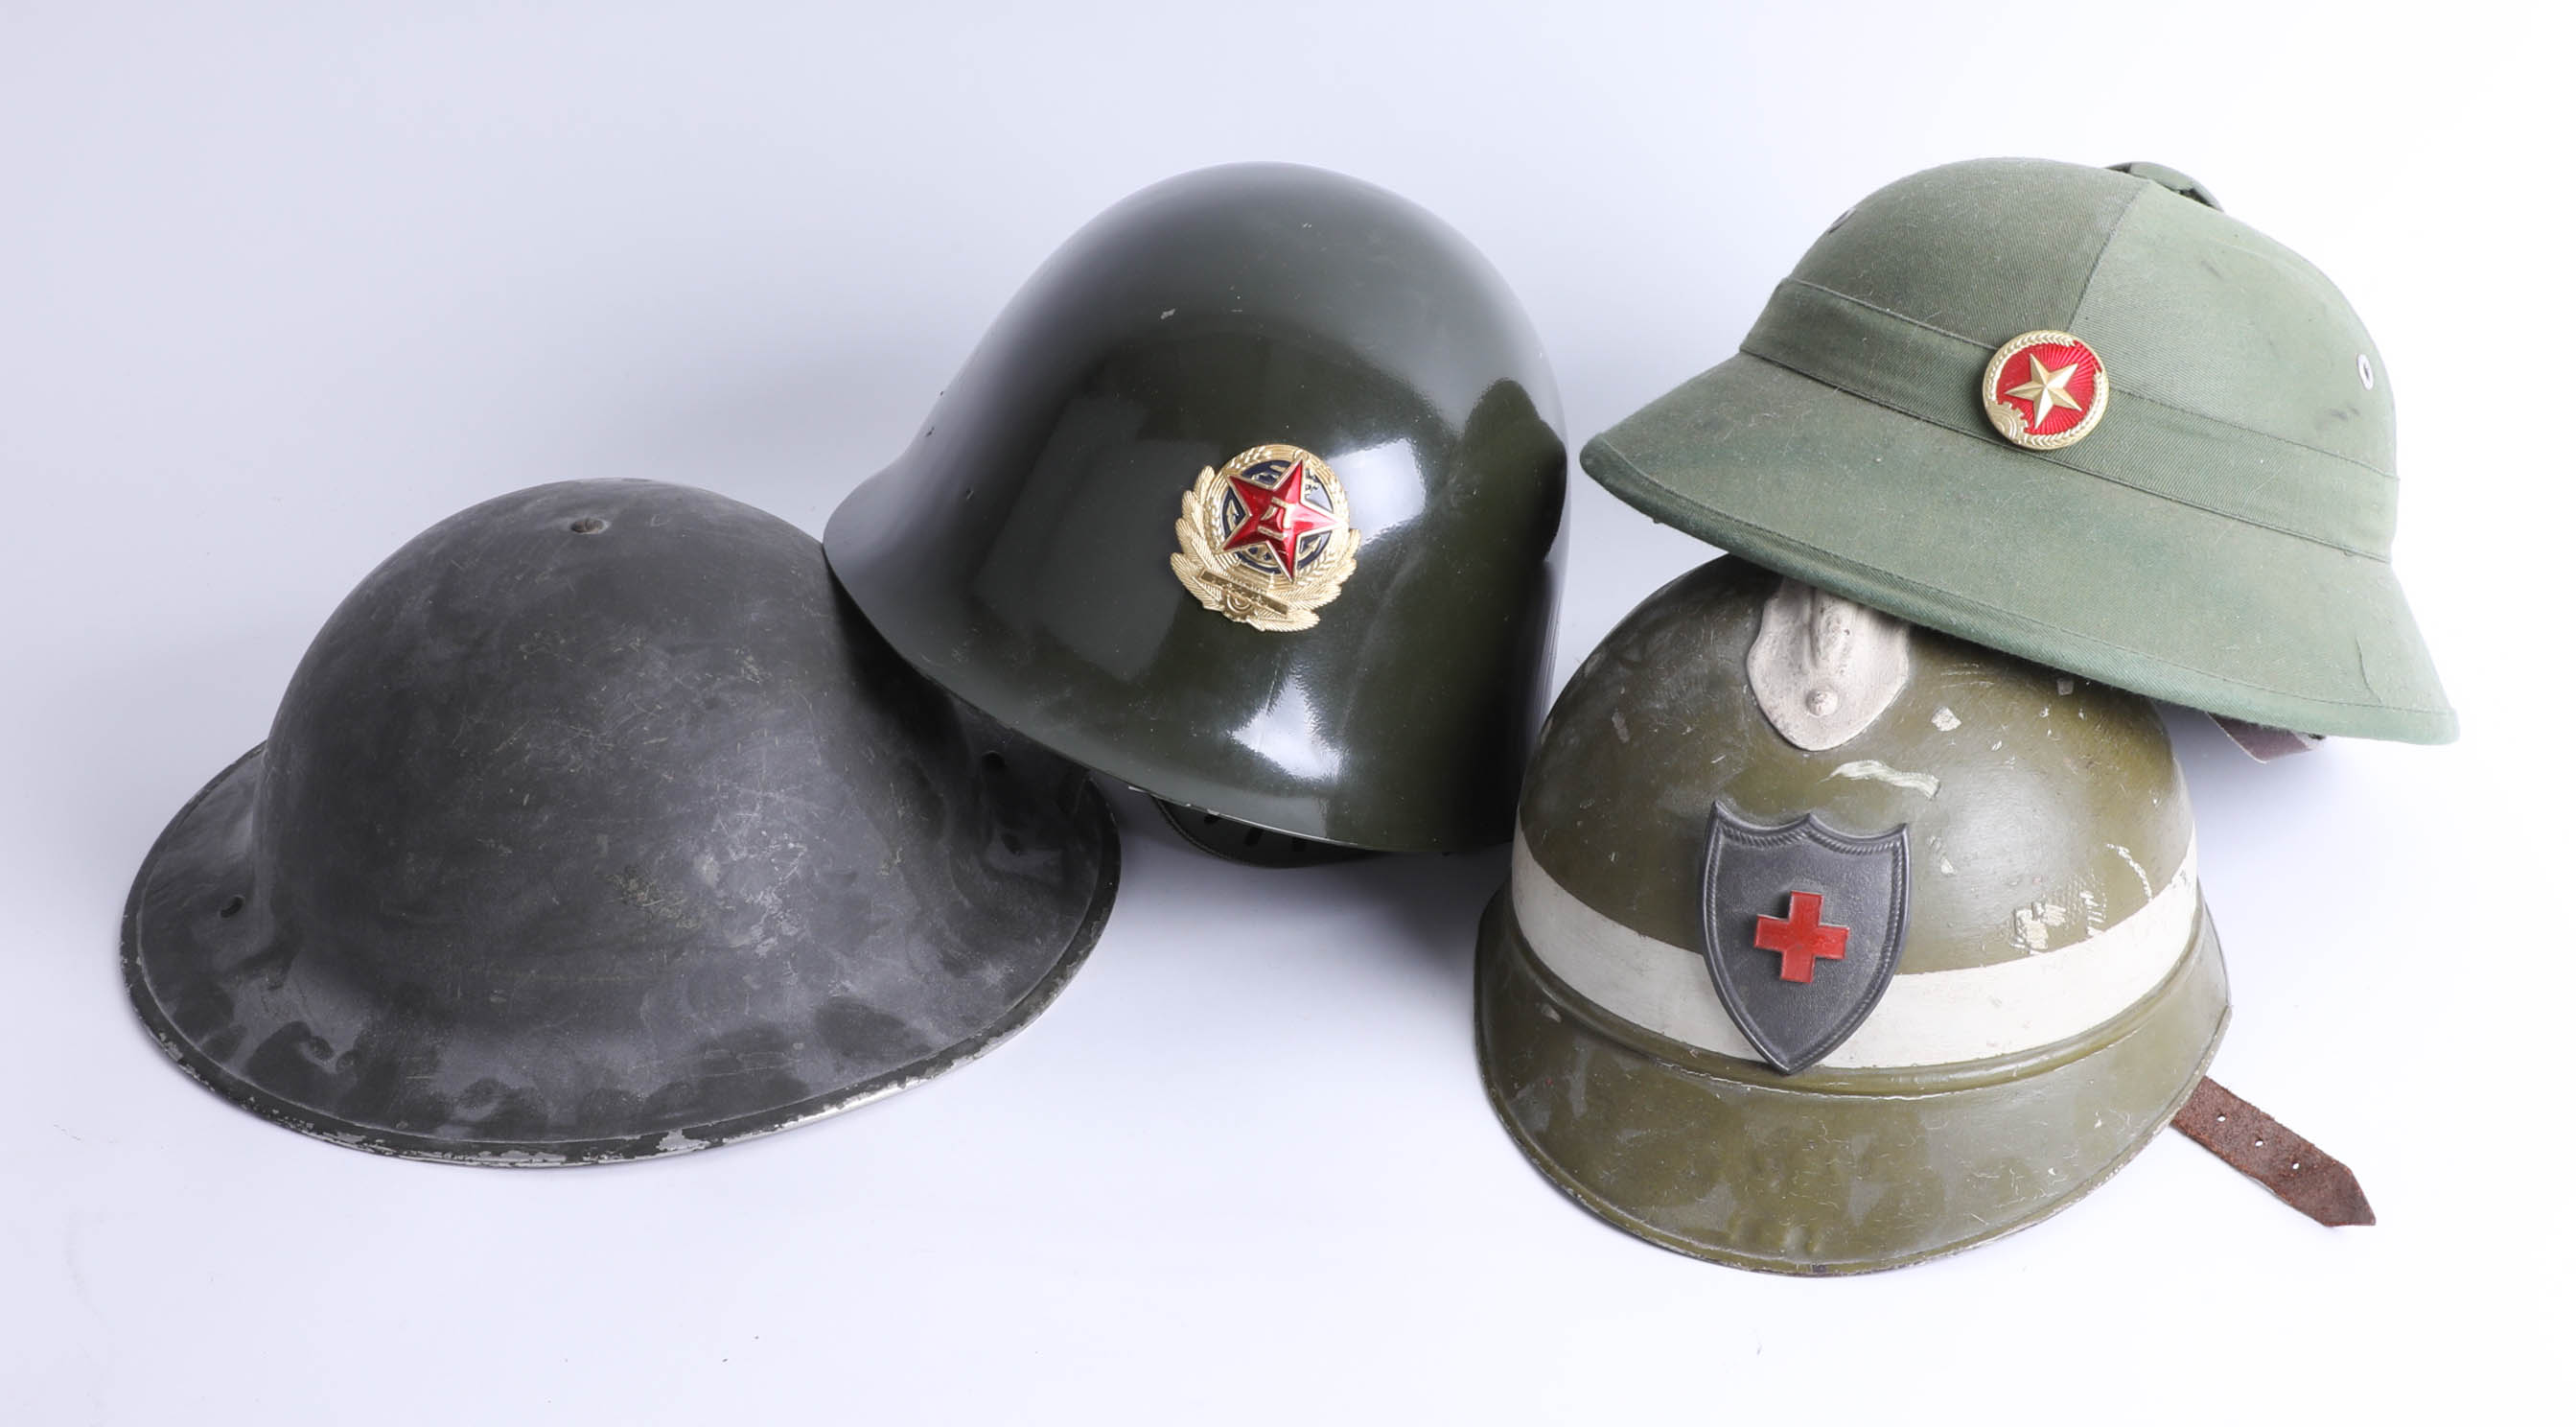 Lot 018 - Four helmets including Chinese Jin Dong, Chinese pith helmet and English WWII helmet. Part of the